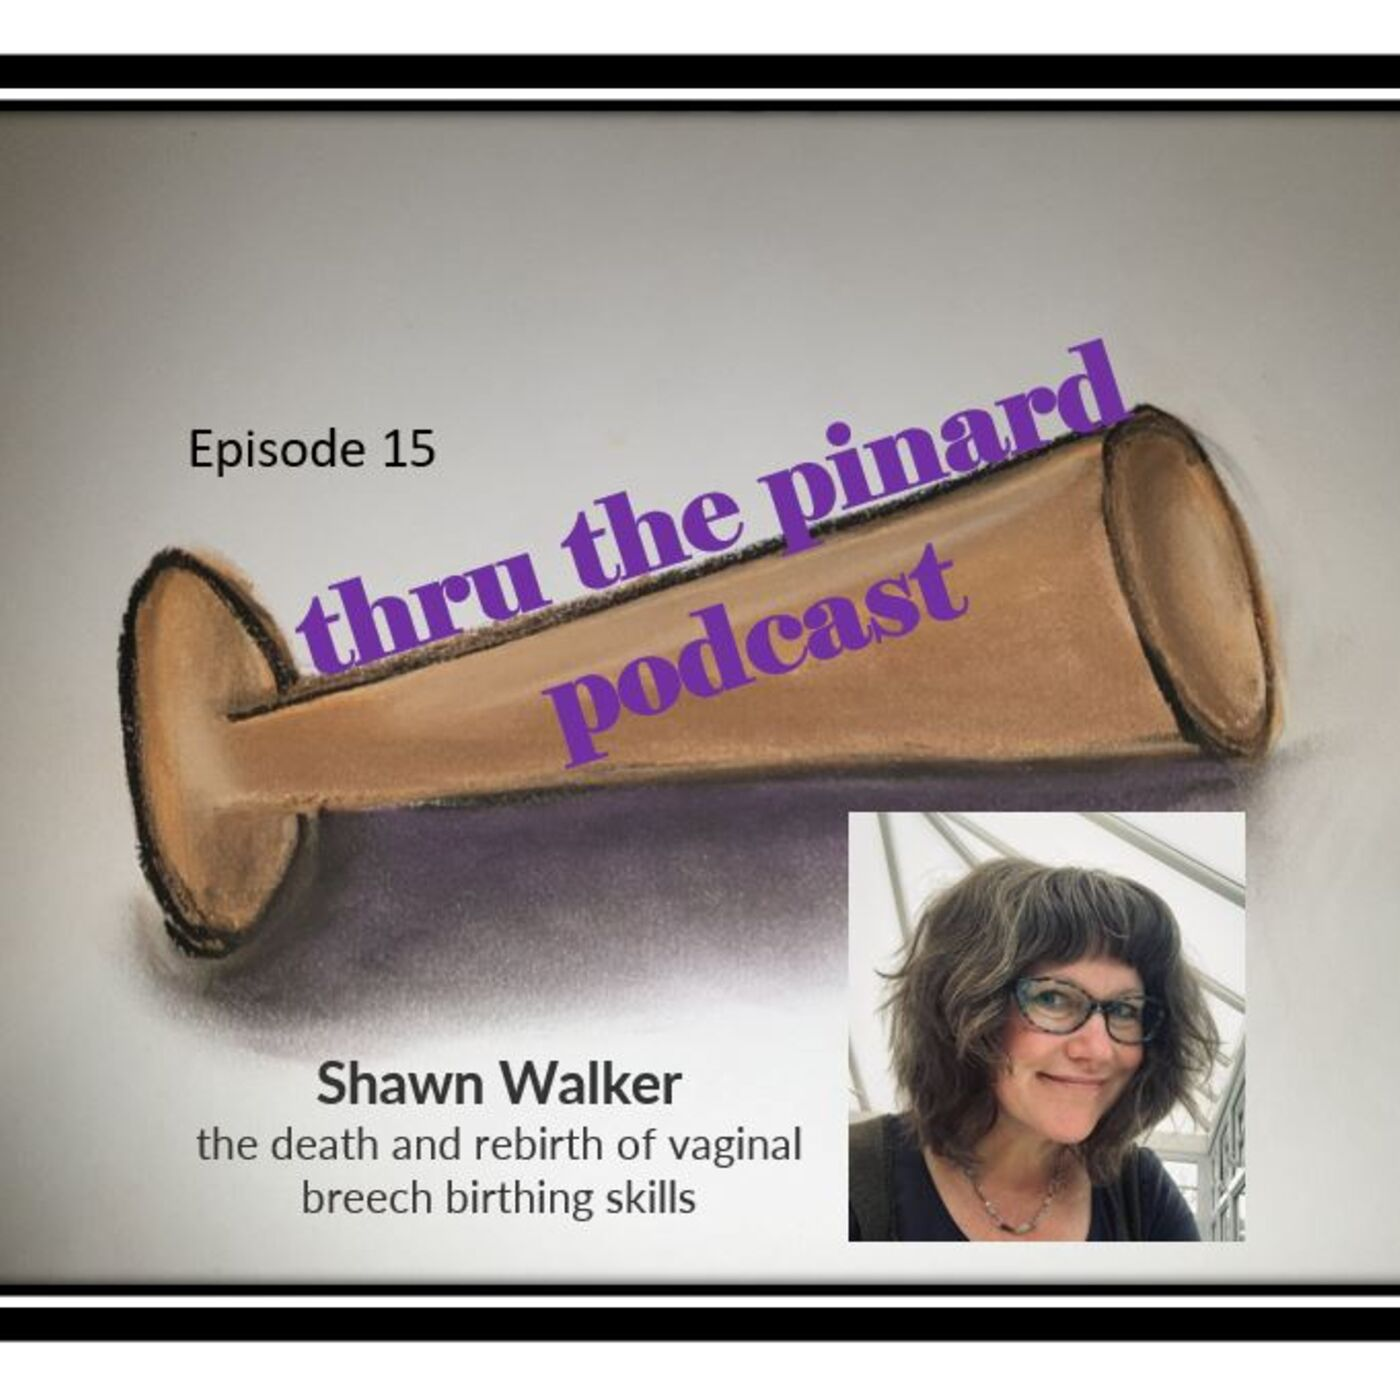 Ep 15 Shawn Walker- the death and rebirth of vaginal breech birthing skills